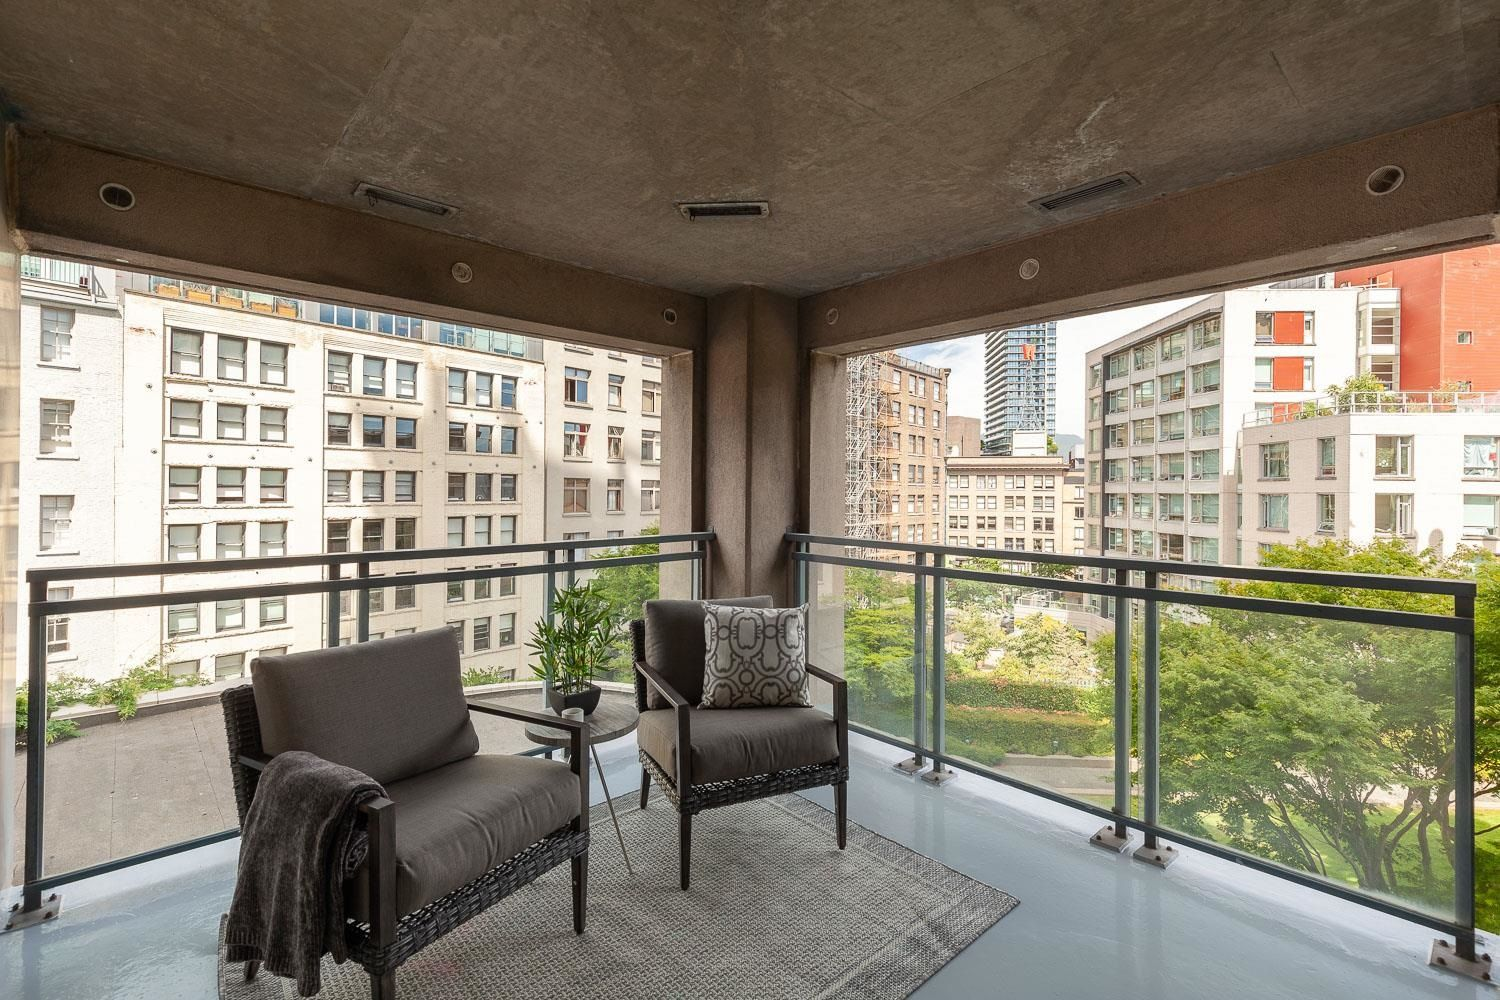 """Main Photo: 602 183 KEEFER Place in Vancouver: Downtown VW Condo for sale in """"Paris Place"""" (Vancouver West)  : MLS®# R2620893"""